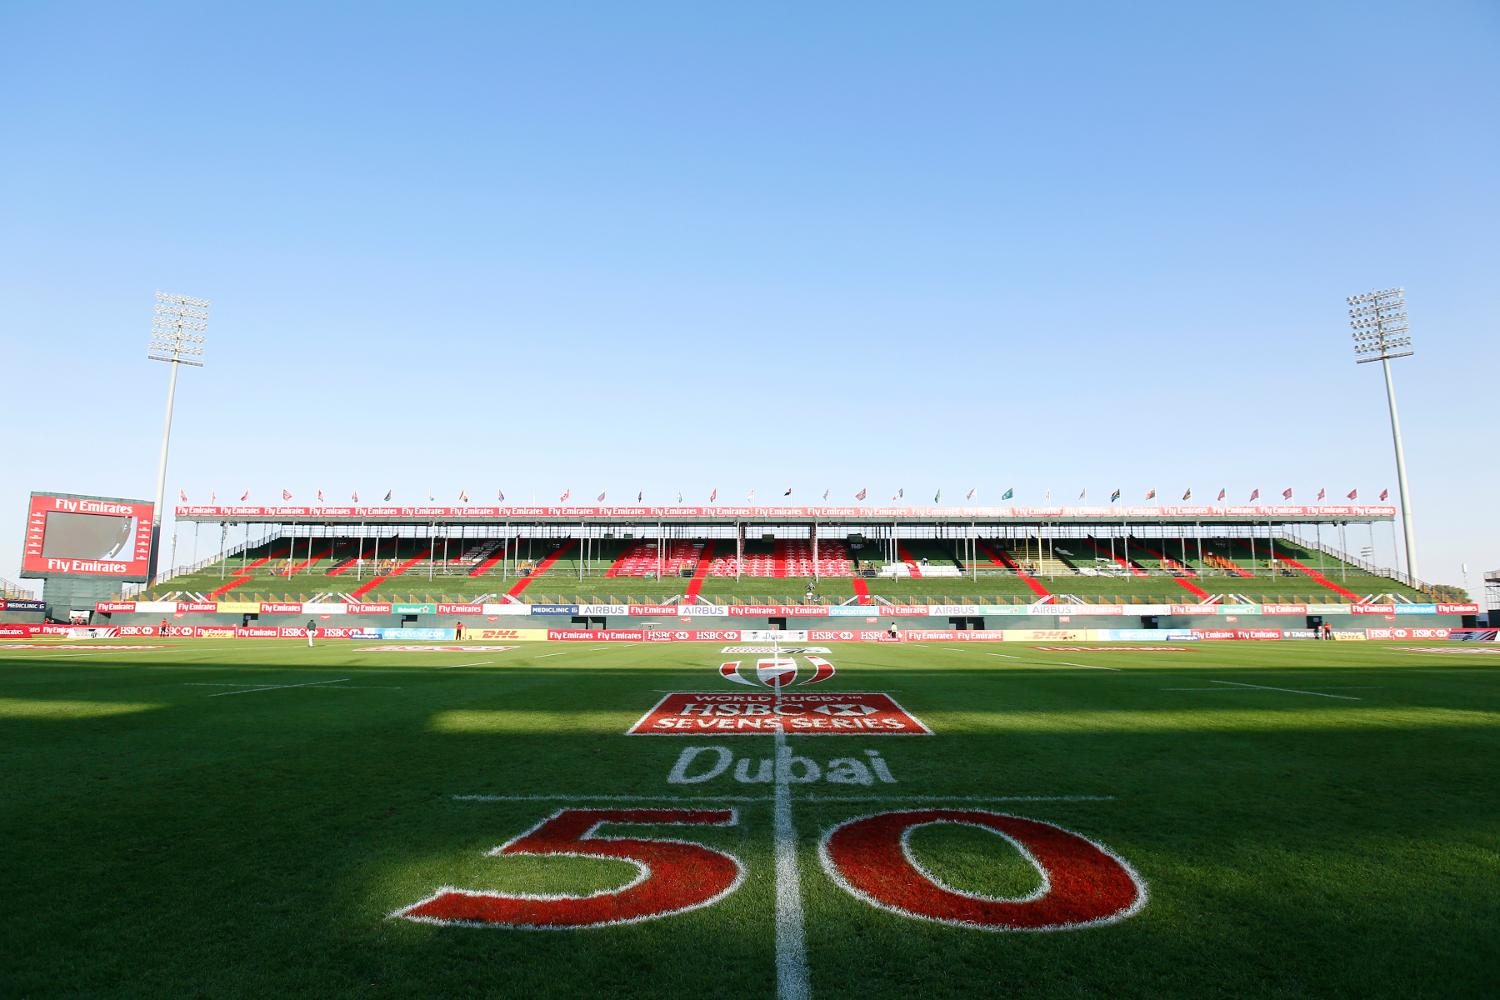 Emirates Airline Dubai Rugby Sevens 2017 - Men's